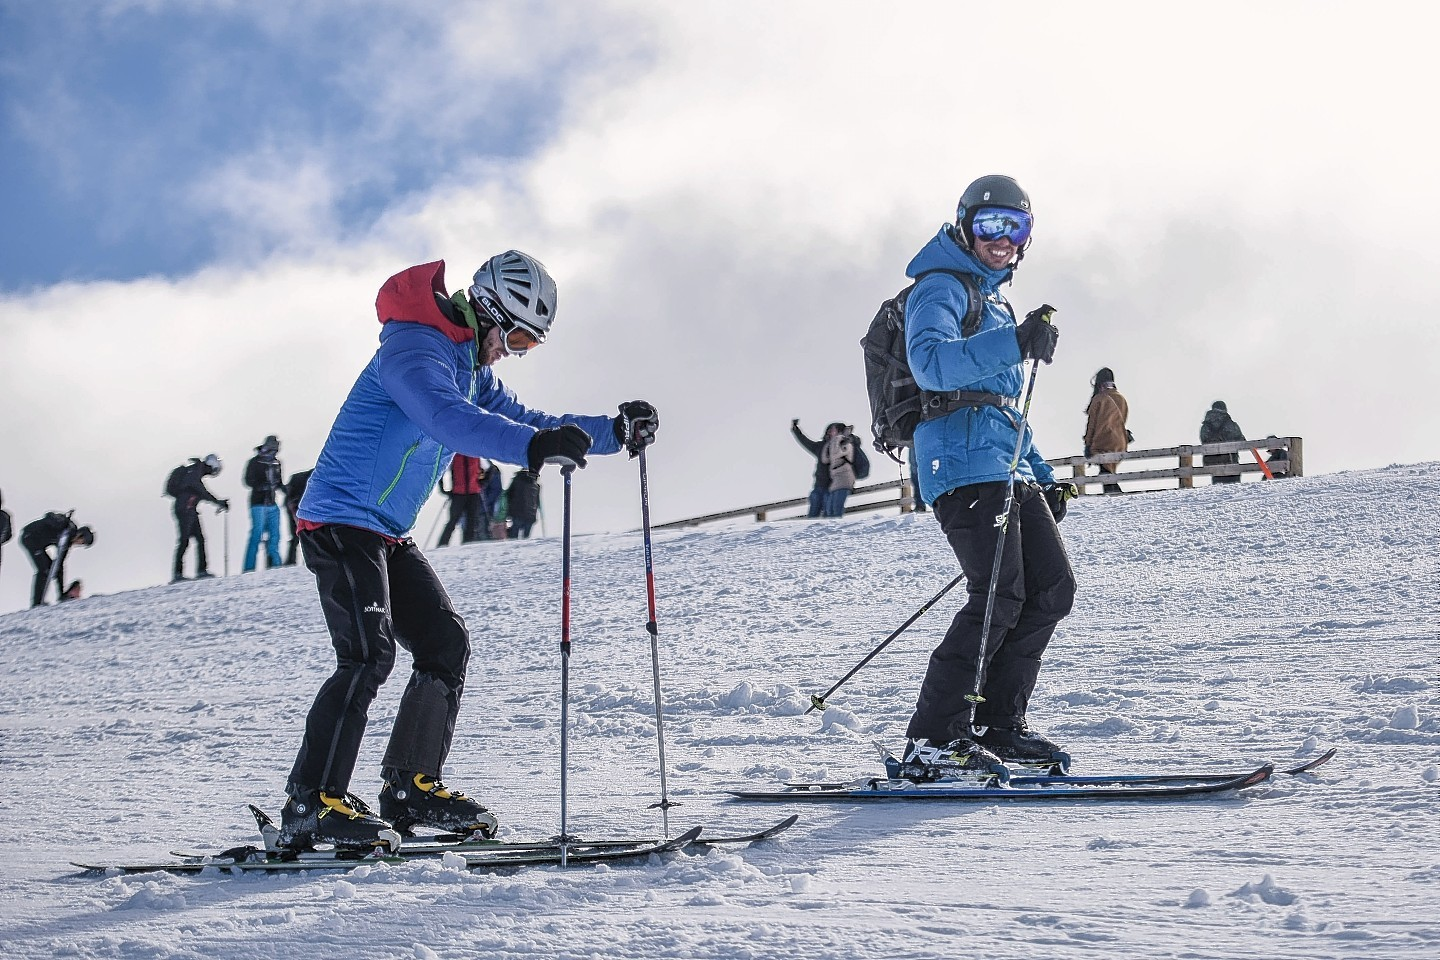 Easter skiing on the Cairngorms